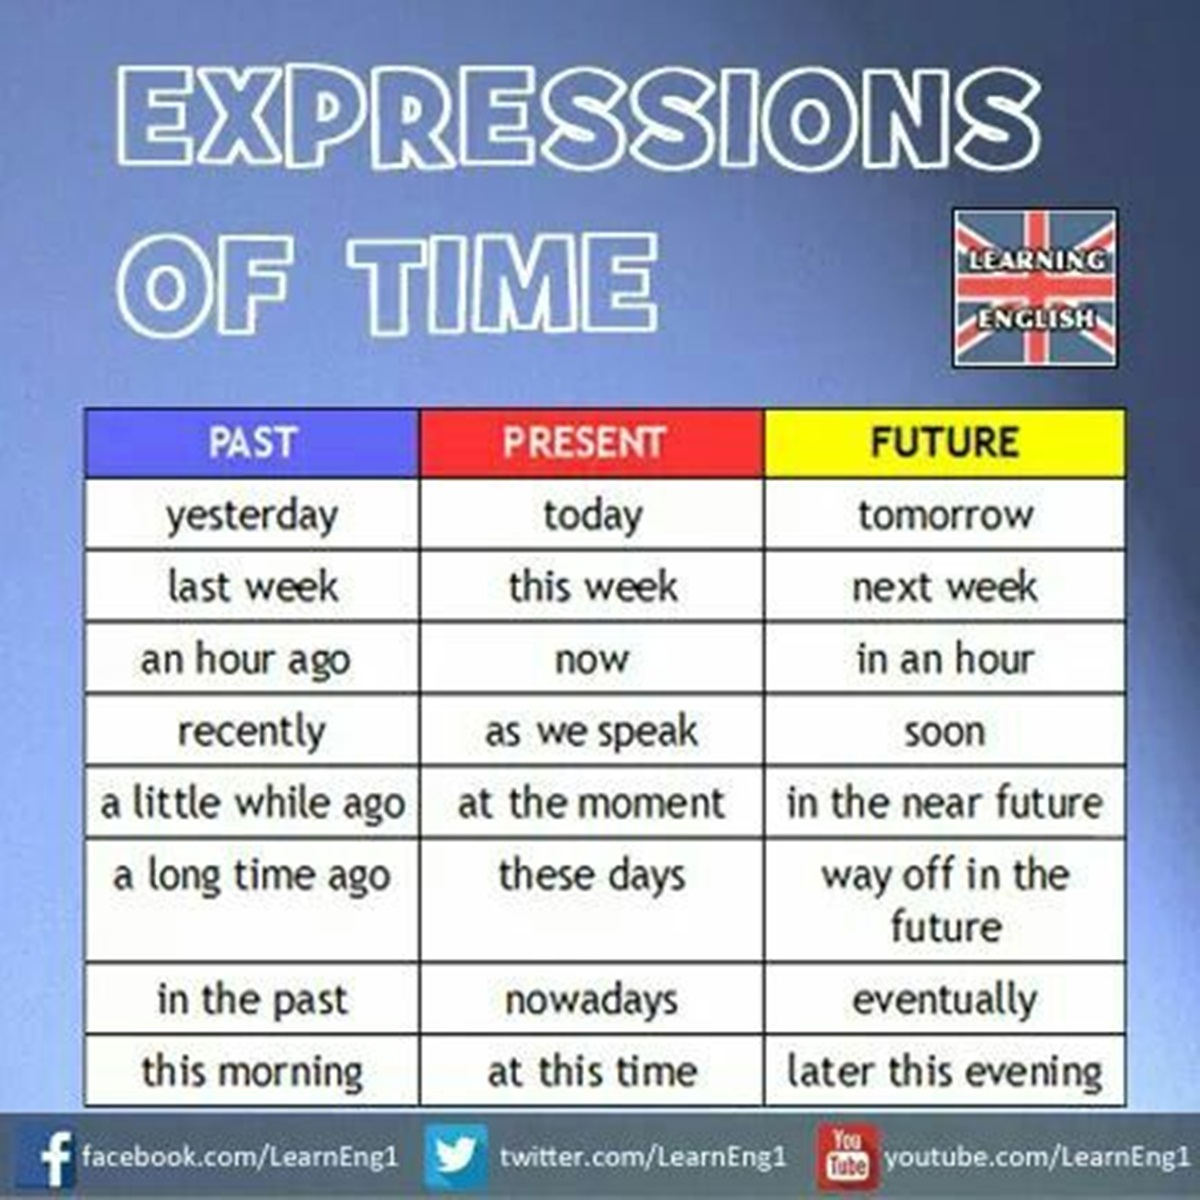 The Expressions of Time 3